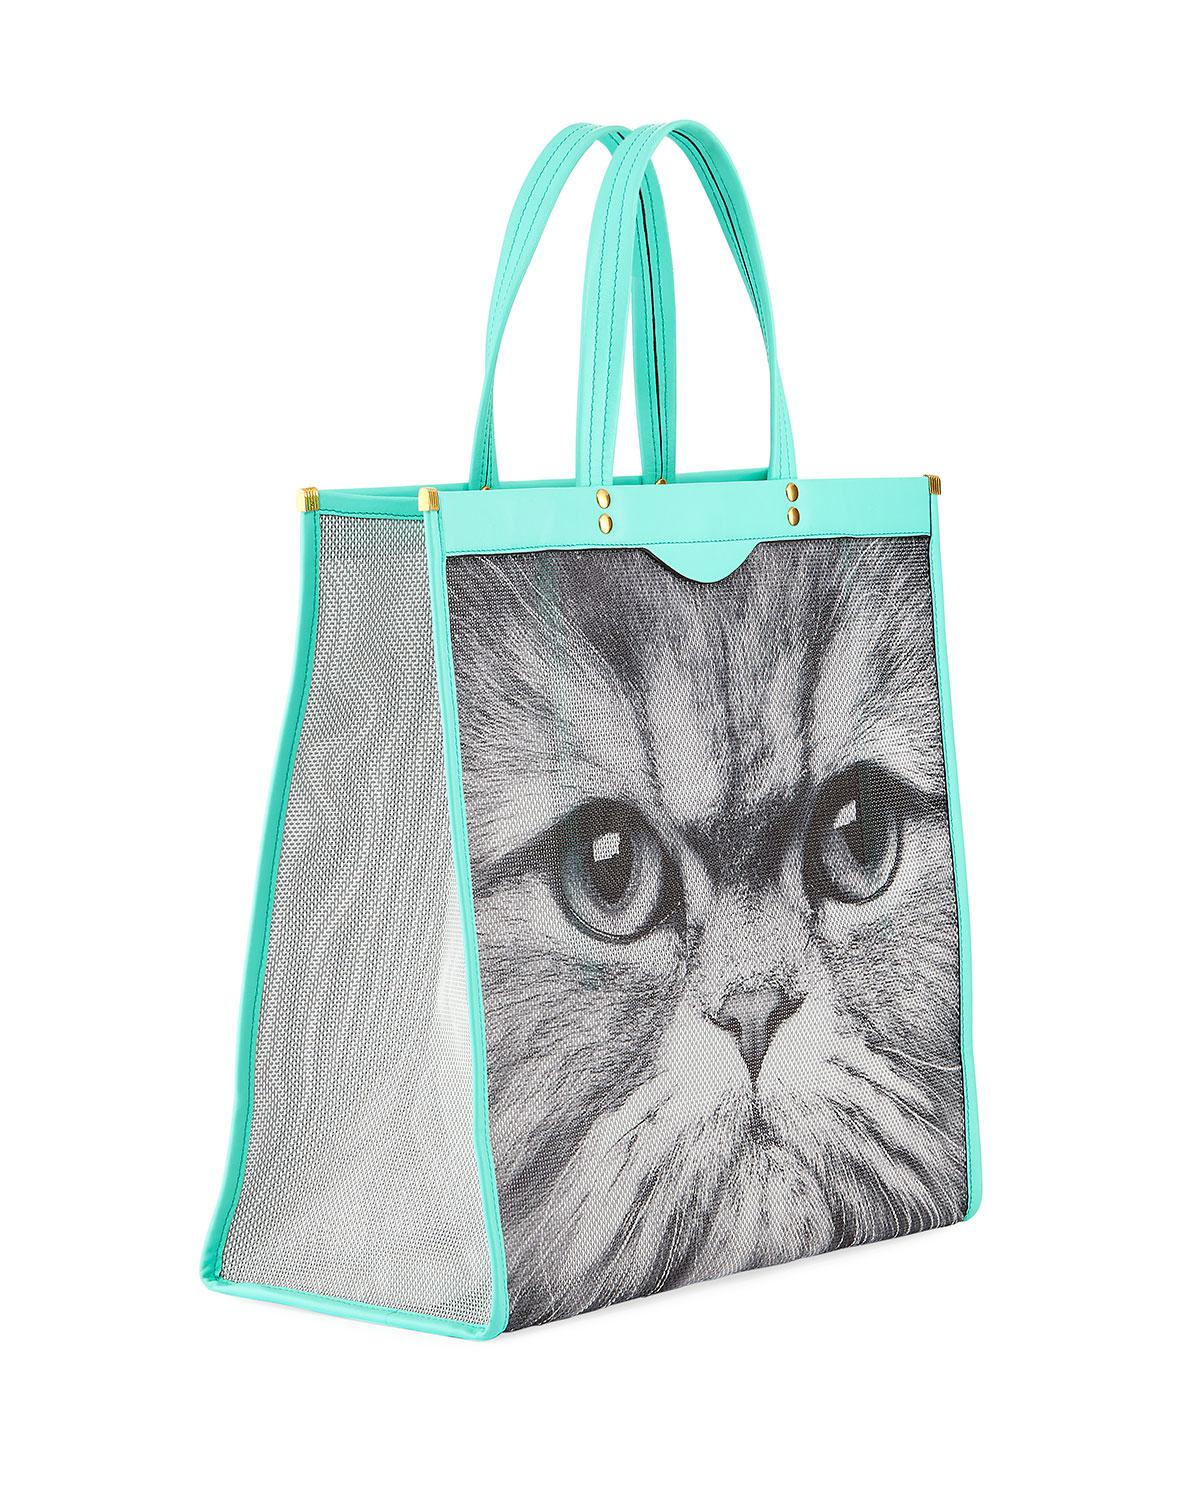 turquoise Kitsch Cat mesh and leather tote bag - Grey Anya Hindmarch 6dXRm1Q